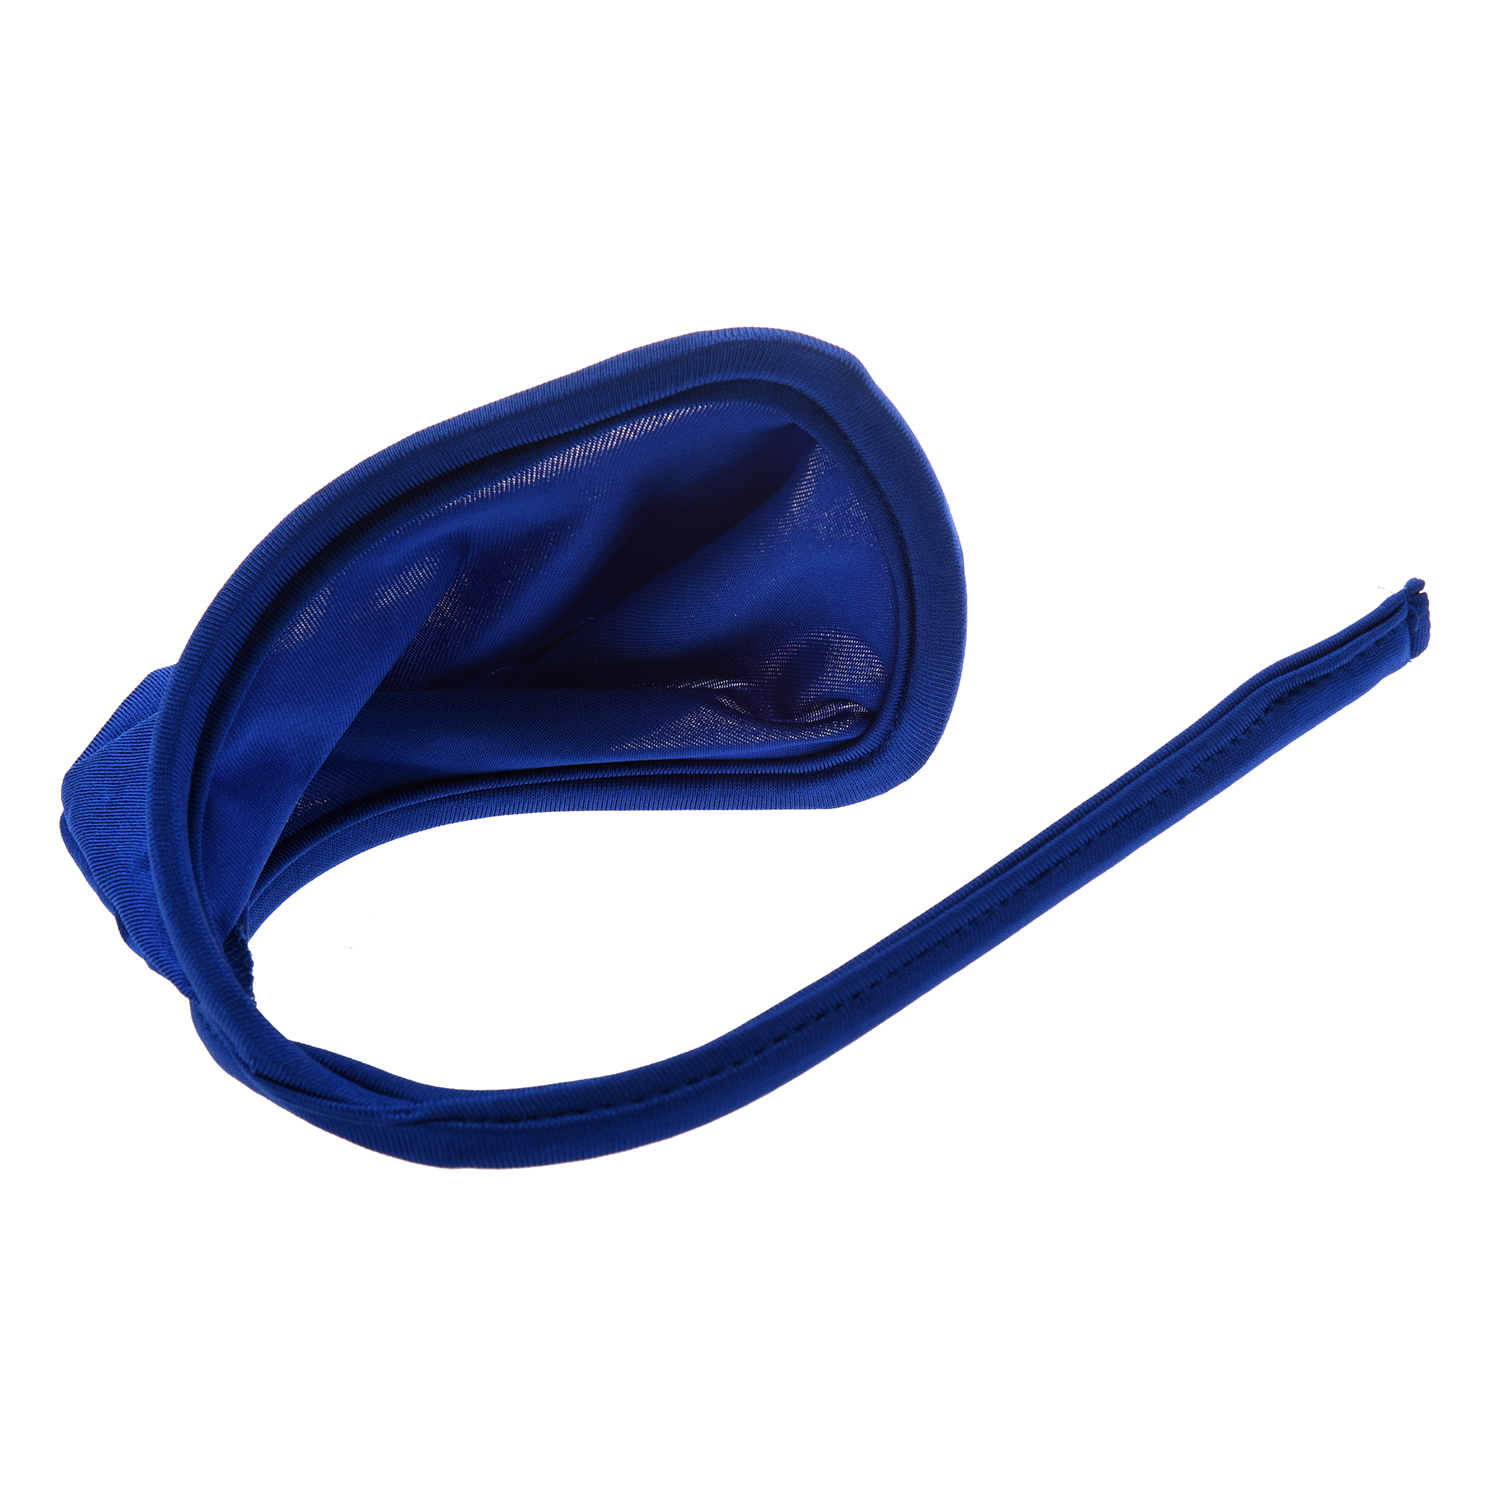 2017 NEW C-string Thong Invisible Underwear Panty For Men - Blue